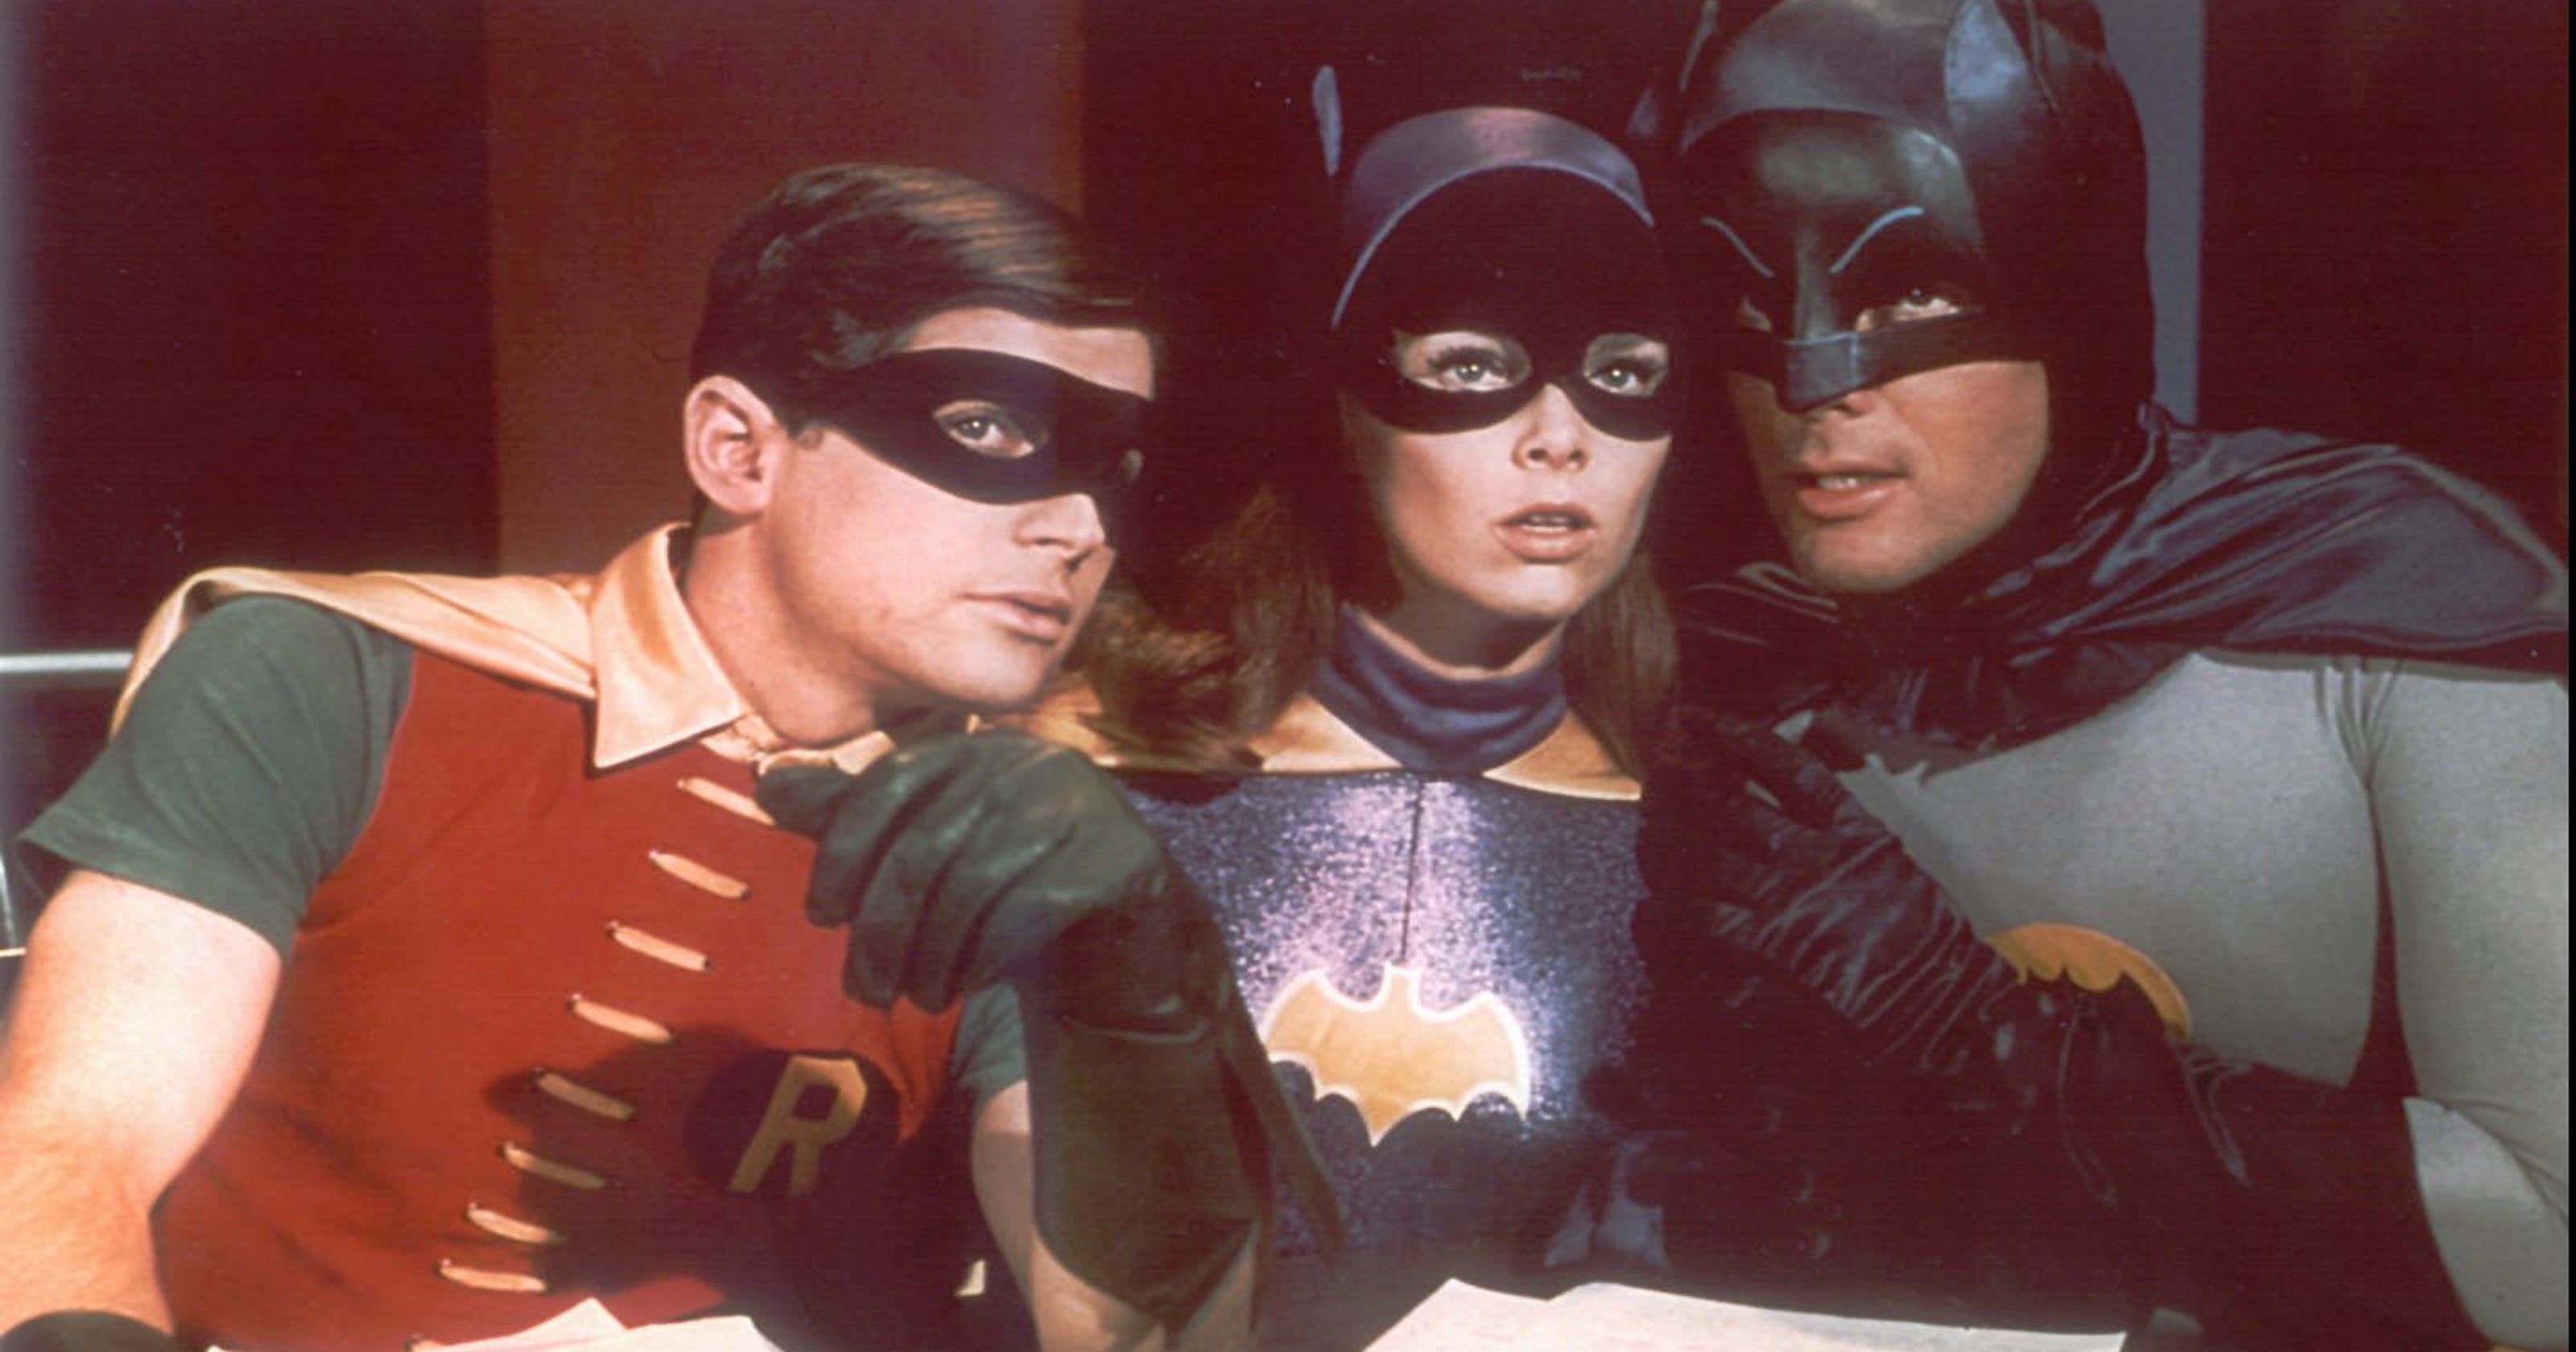 Yvonne Craig Who Played Batgirl In The 1960s Dies At 78 Radio Wave Diagram Http Hollywoodbollywood Co Hoadmin